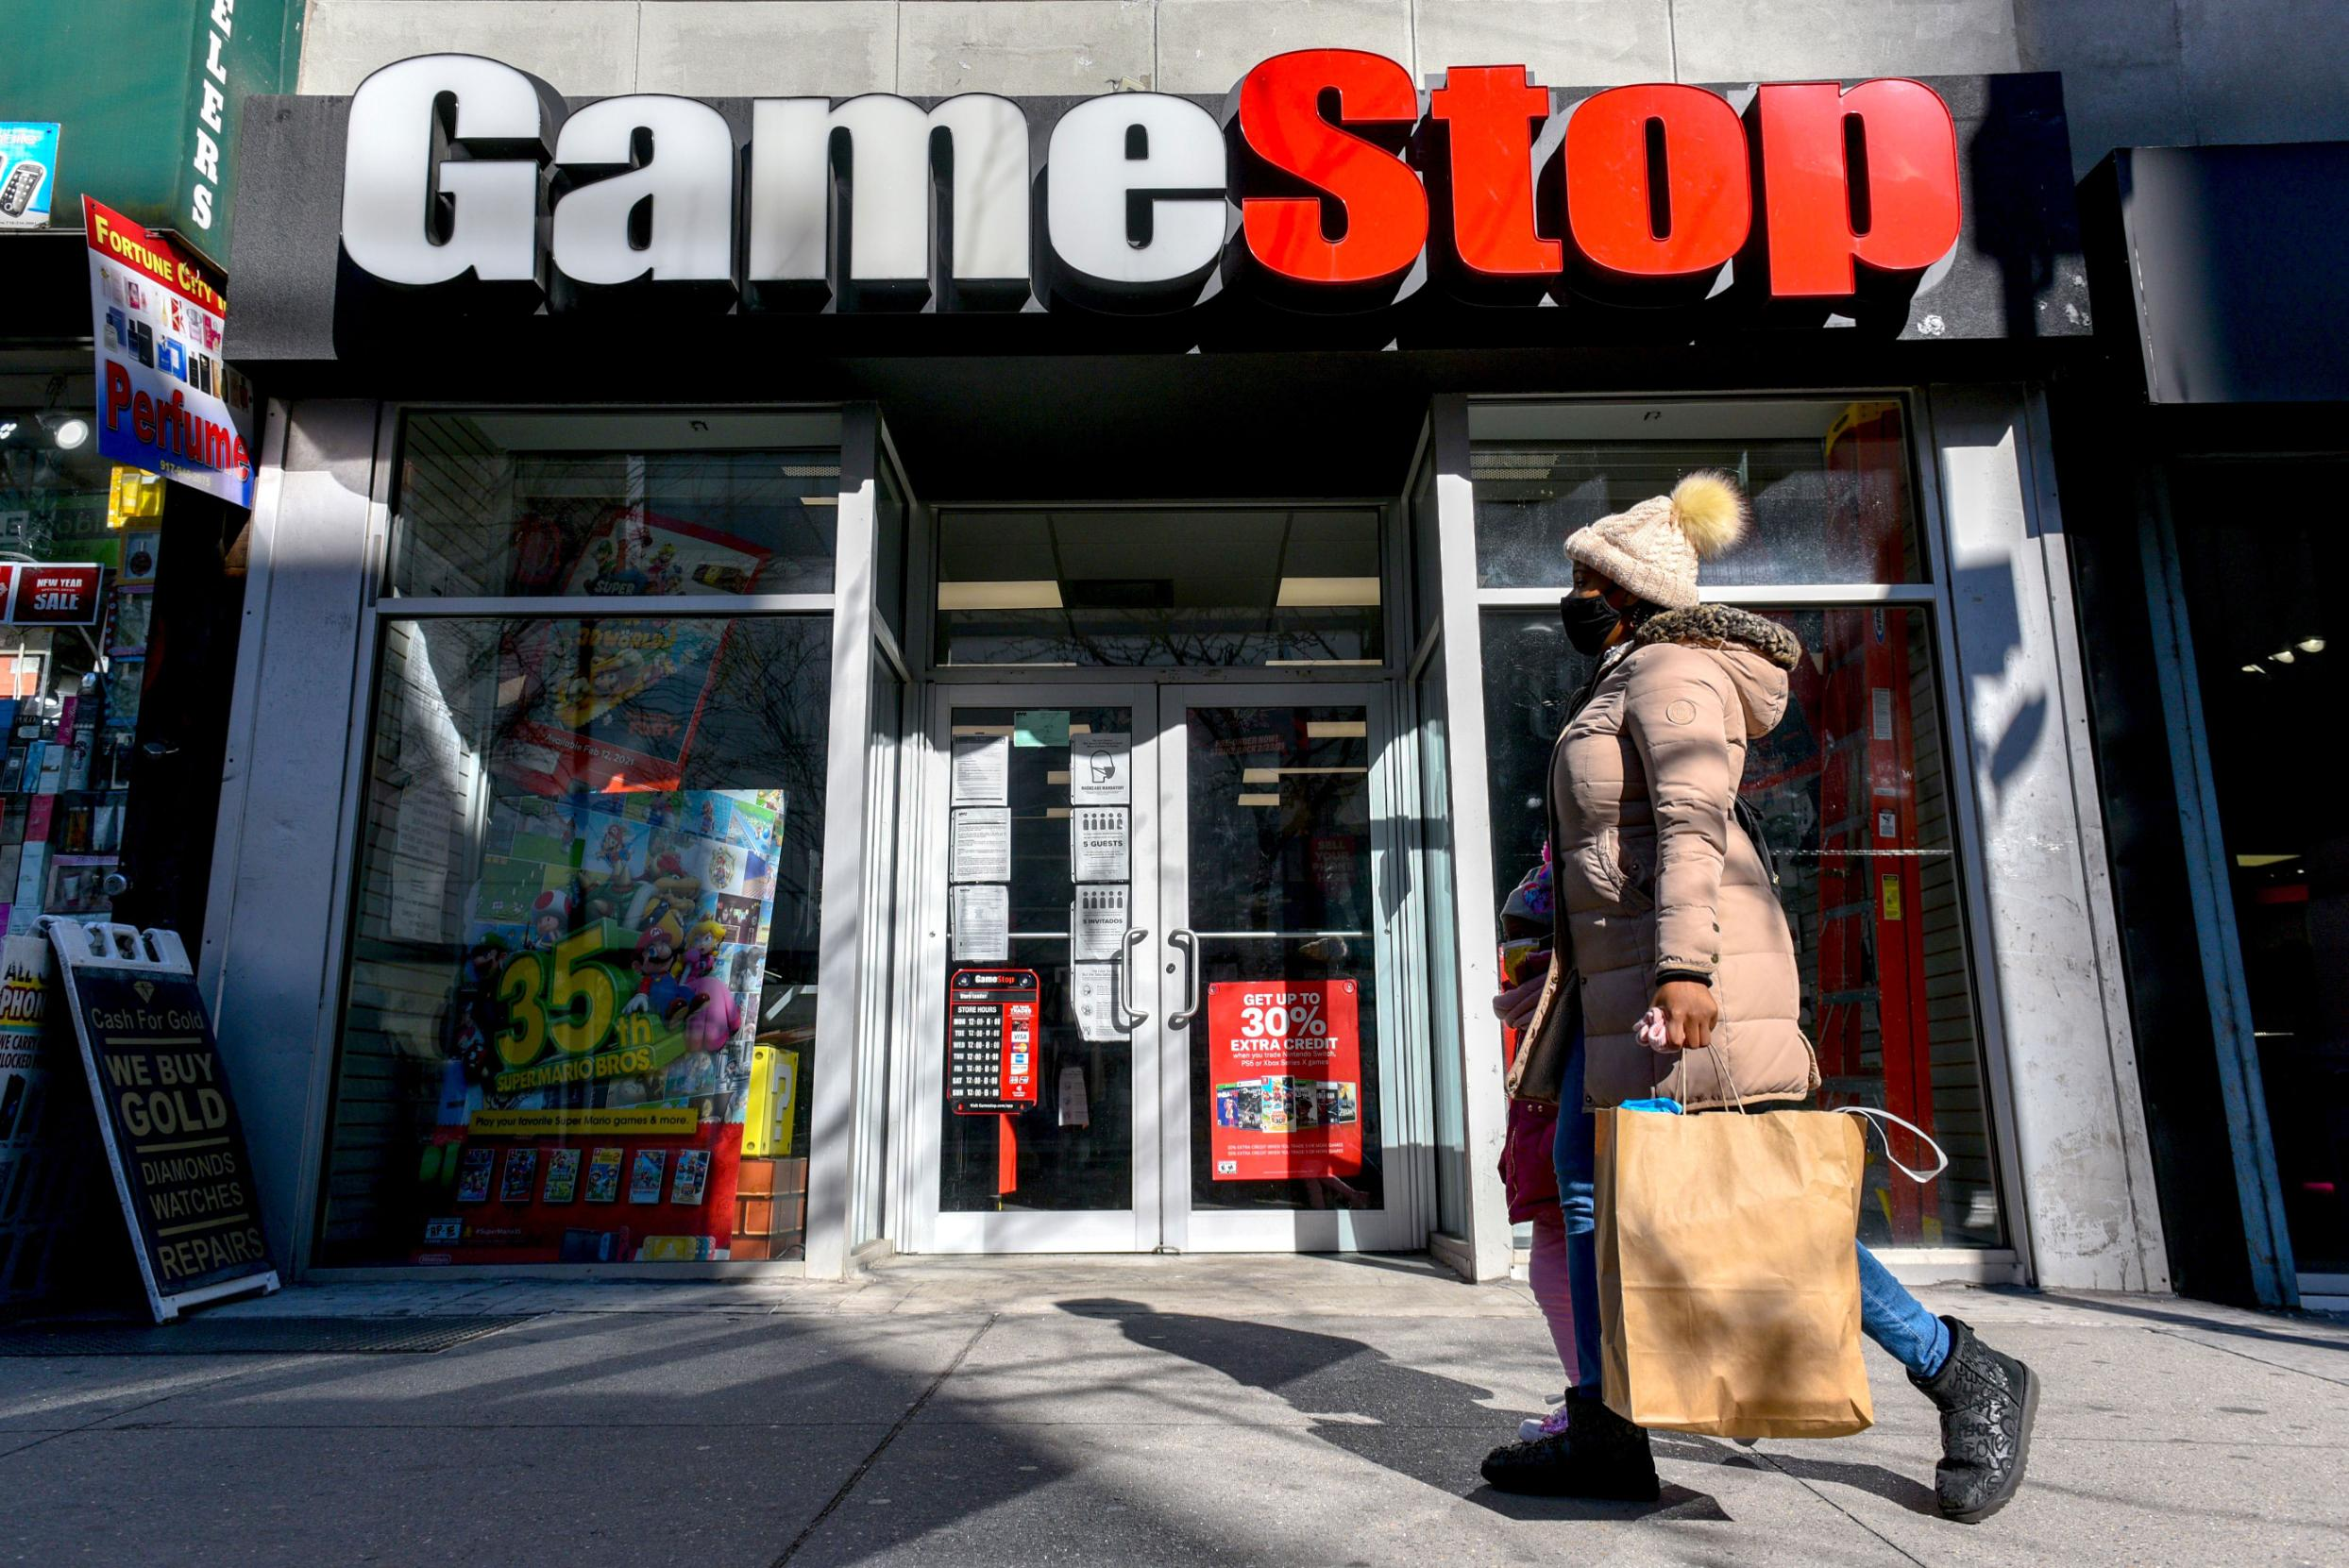 GameStop soars 85% after doubling yesterday